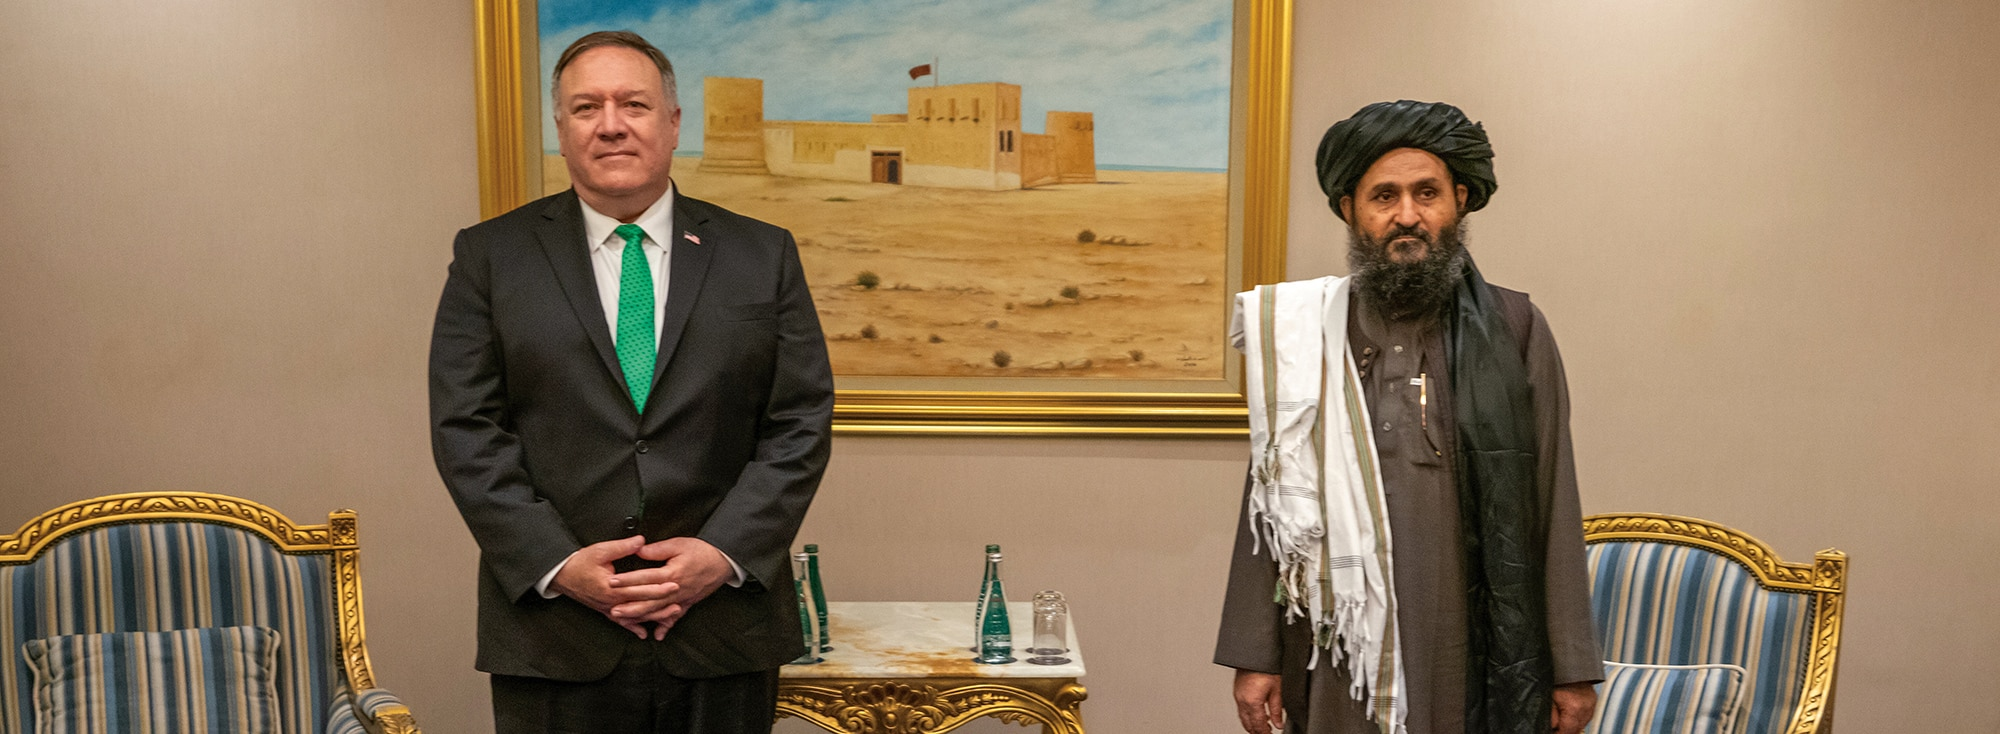 Photo showing Secretary Pompeo meeting with the Taliban Delegation in Doha, Qatar, September 12, 2020. [Department of State]